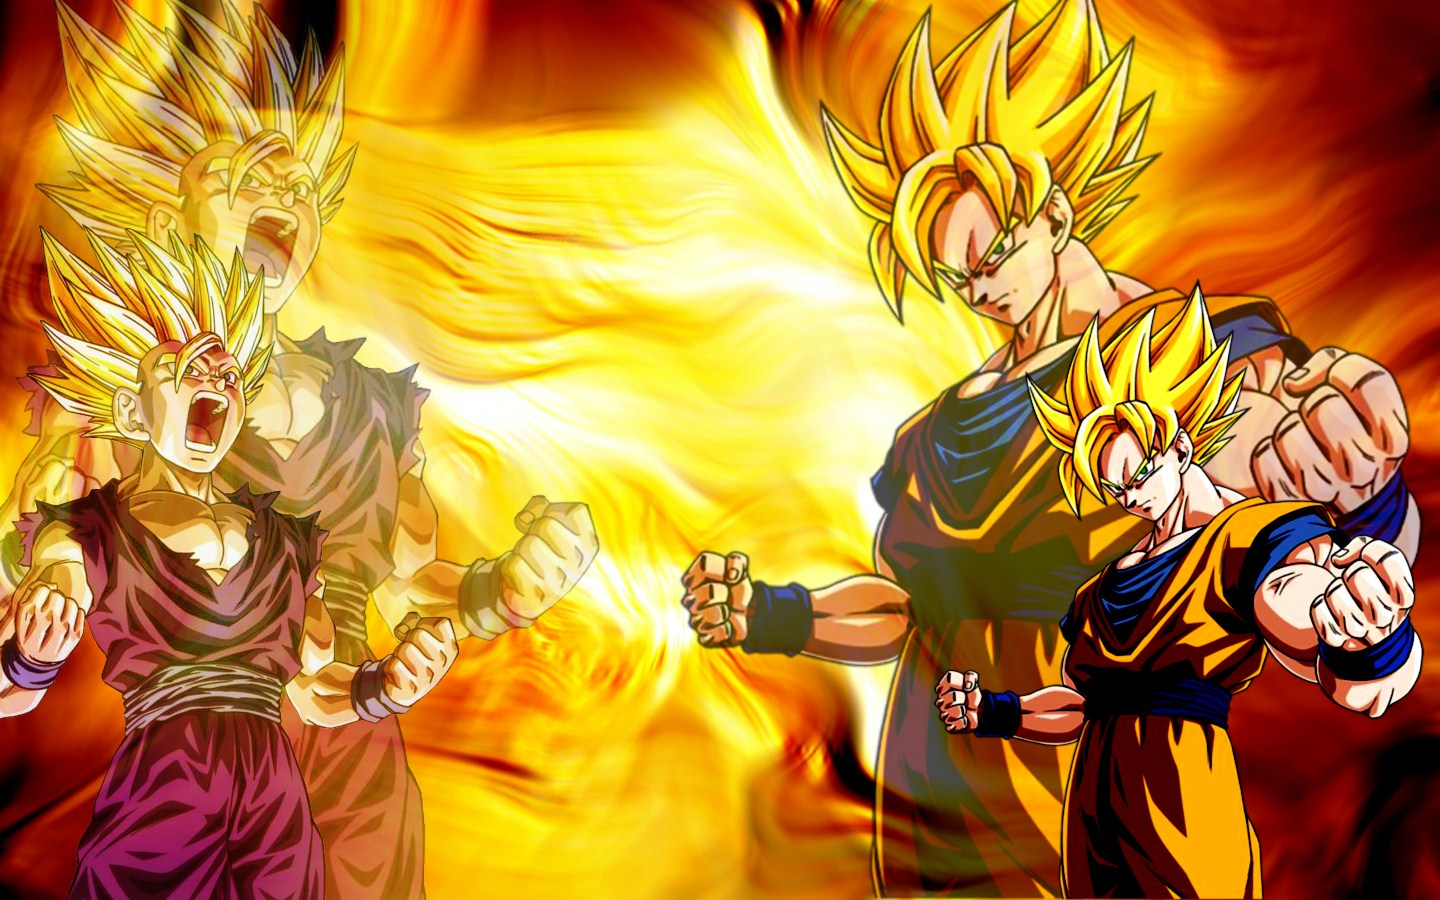 Dragonball Dragon Ball Z For Free Photo Desktop Wallpaper